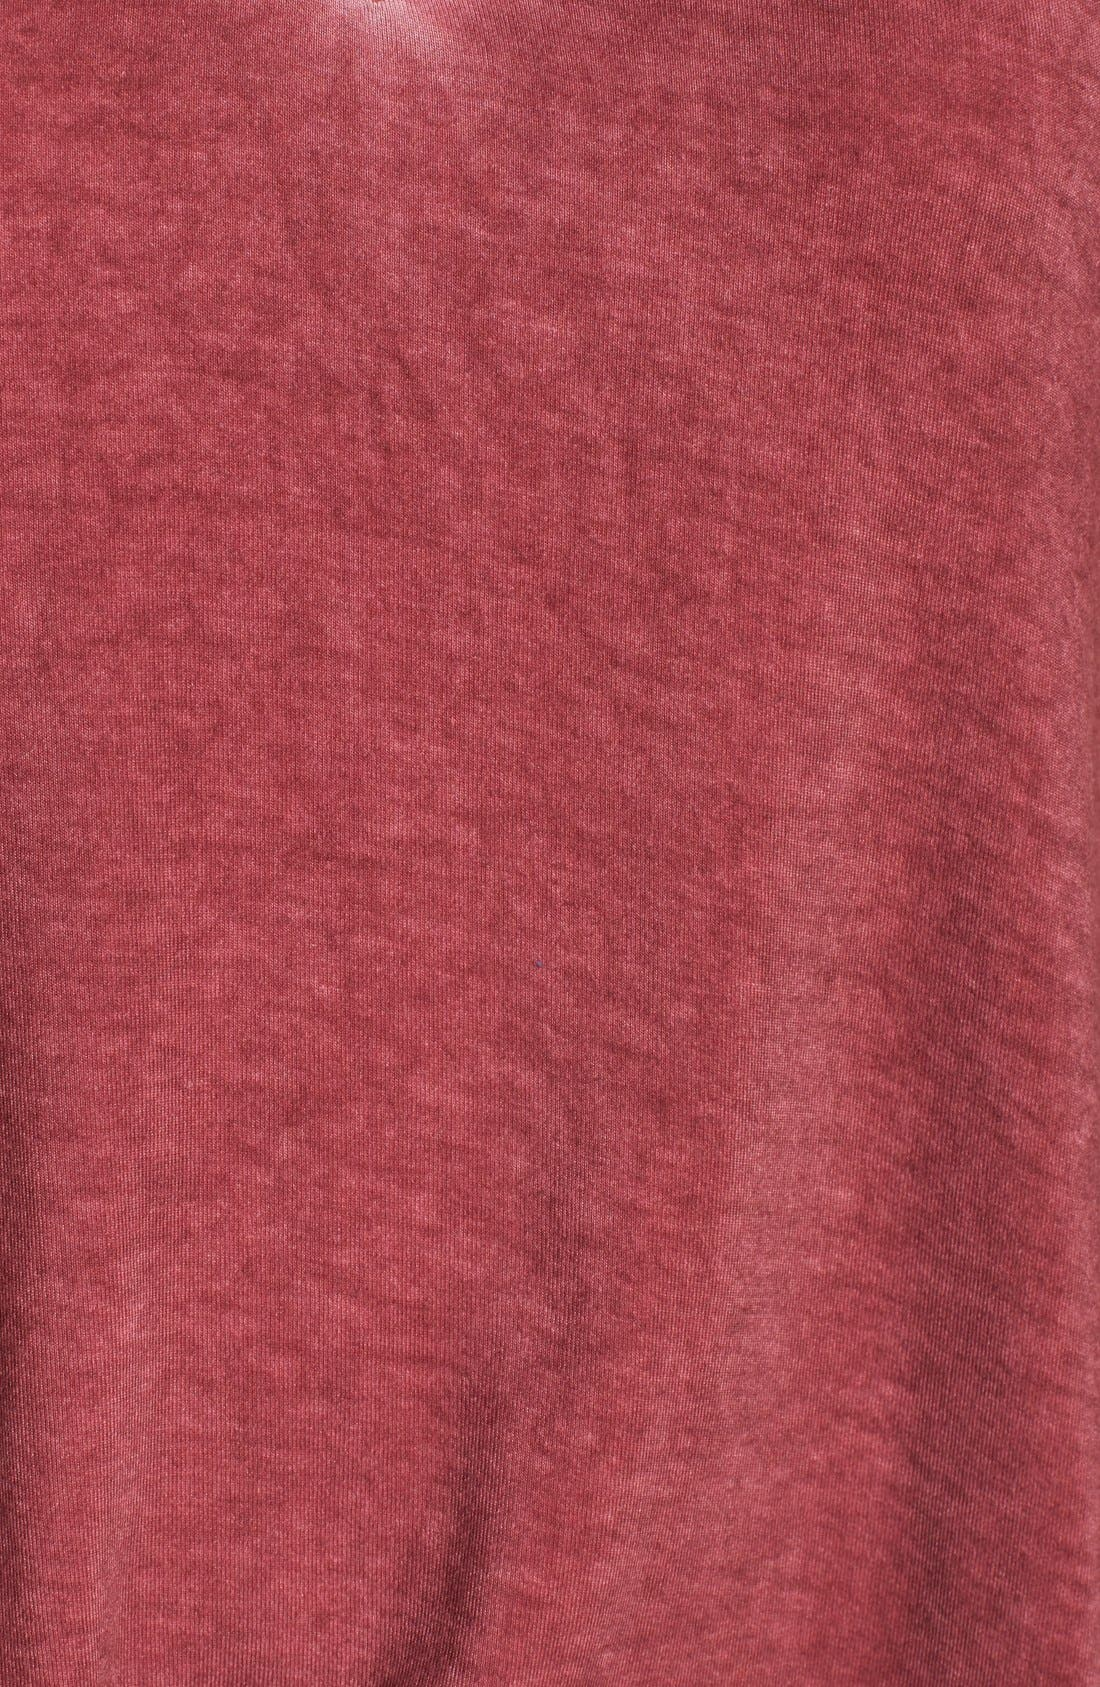 Oil Wash Cutout Tee,                             Alternate thumbnail 6, color,                             Red Cordovan